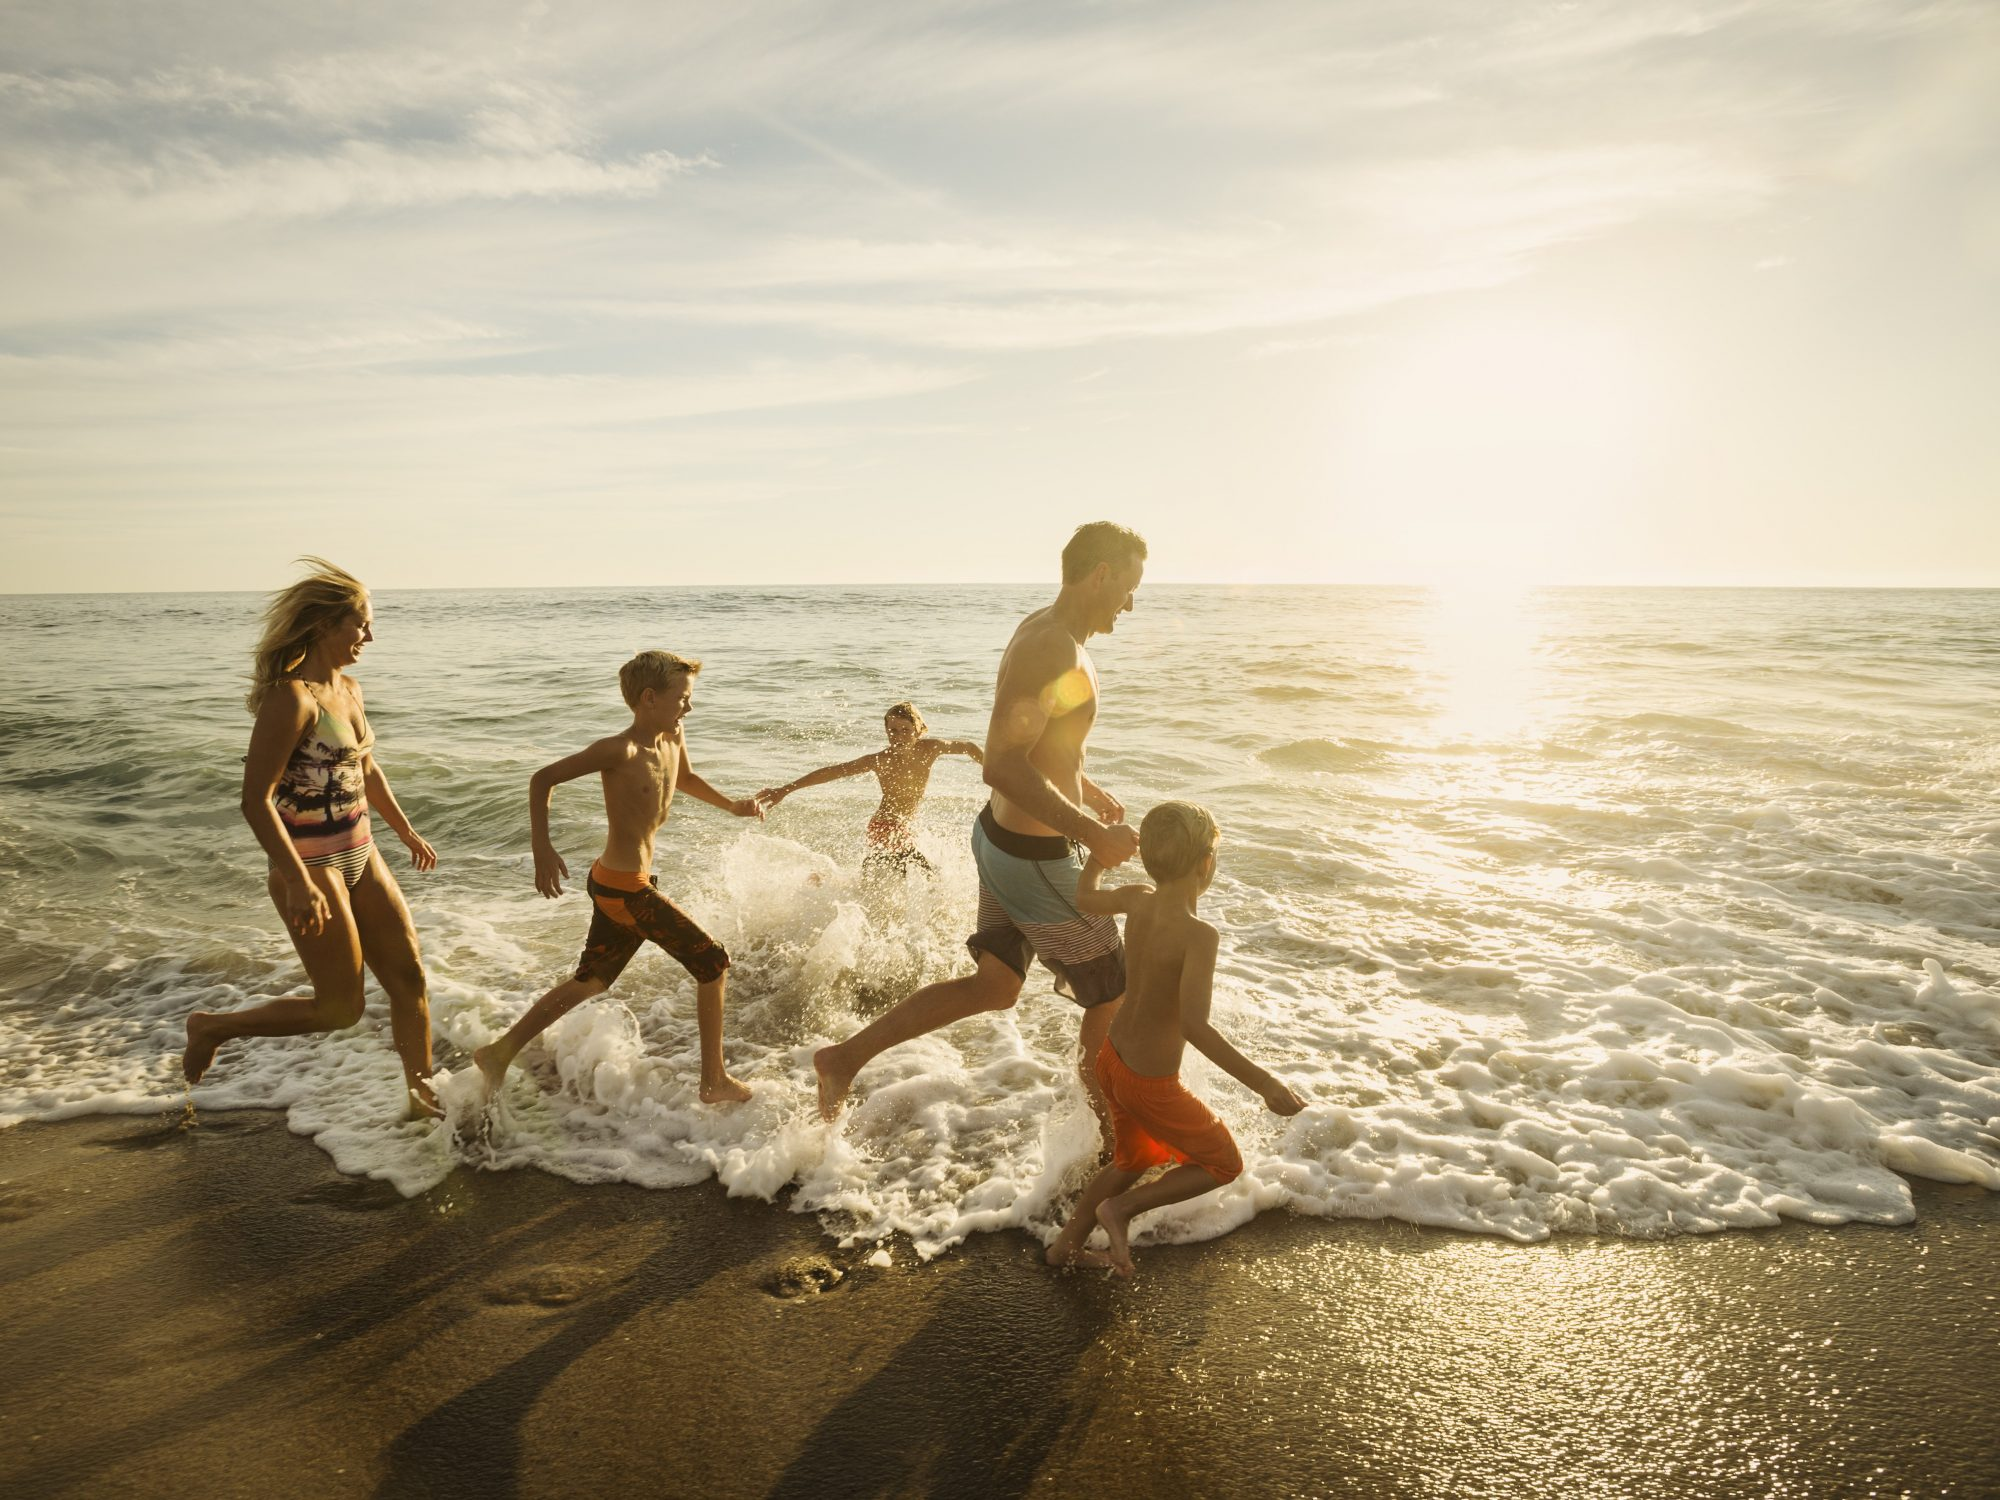 USA, California, Laguna Beach, Family with three children (6-7, 10-11, 14-15) running on beach